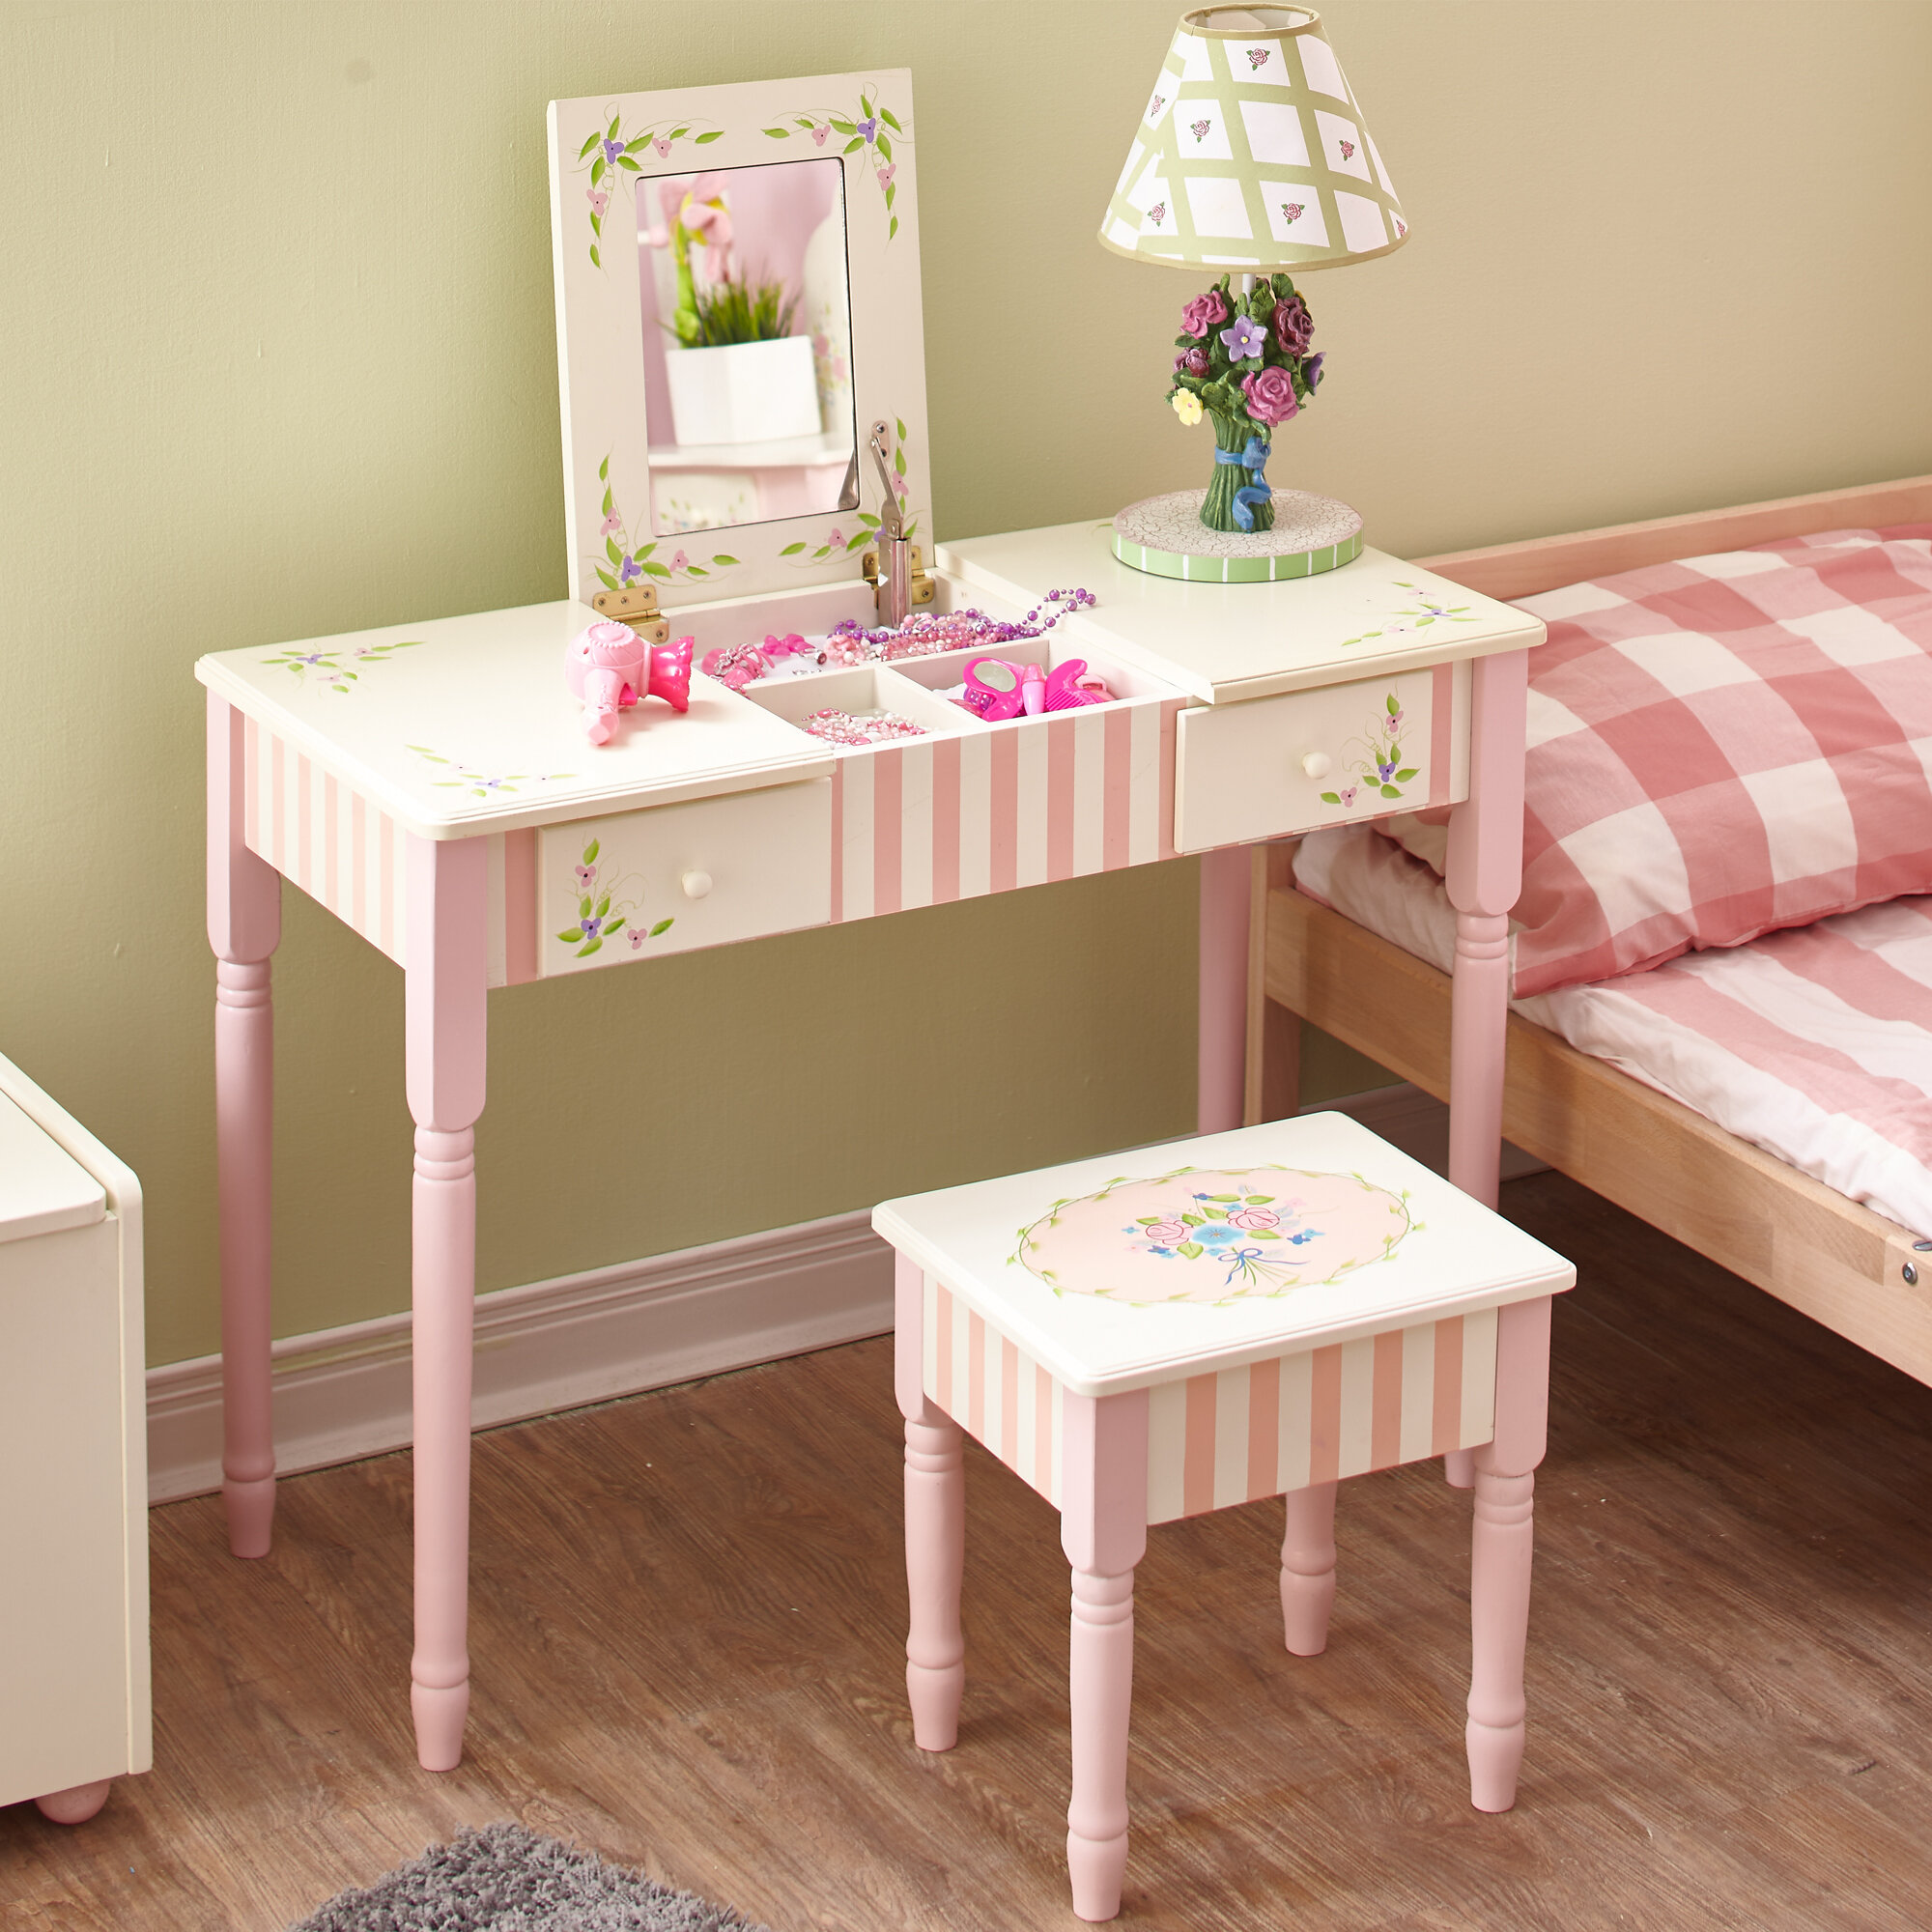 Enjoyable Bouquet Vanity Table Stool Set Gmtry Best Dining Table And Chair Ideas Images Gmtryco